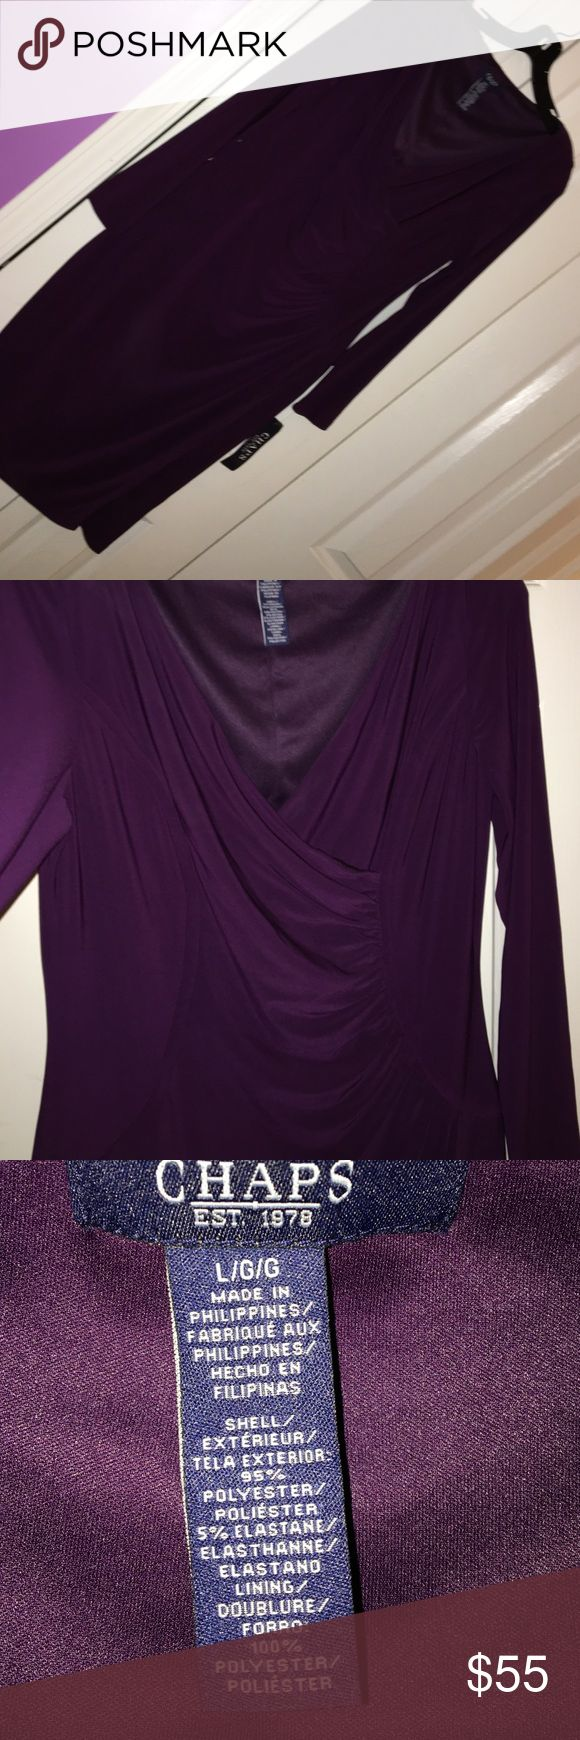 Simply sexy.   NWT .  Chaps dress size large. Beautiful plum color, sexy curve-hugging, eyecarching. Never worn.  Just never had the occasion.  🙁 Chaps Dresses Long Sleeve